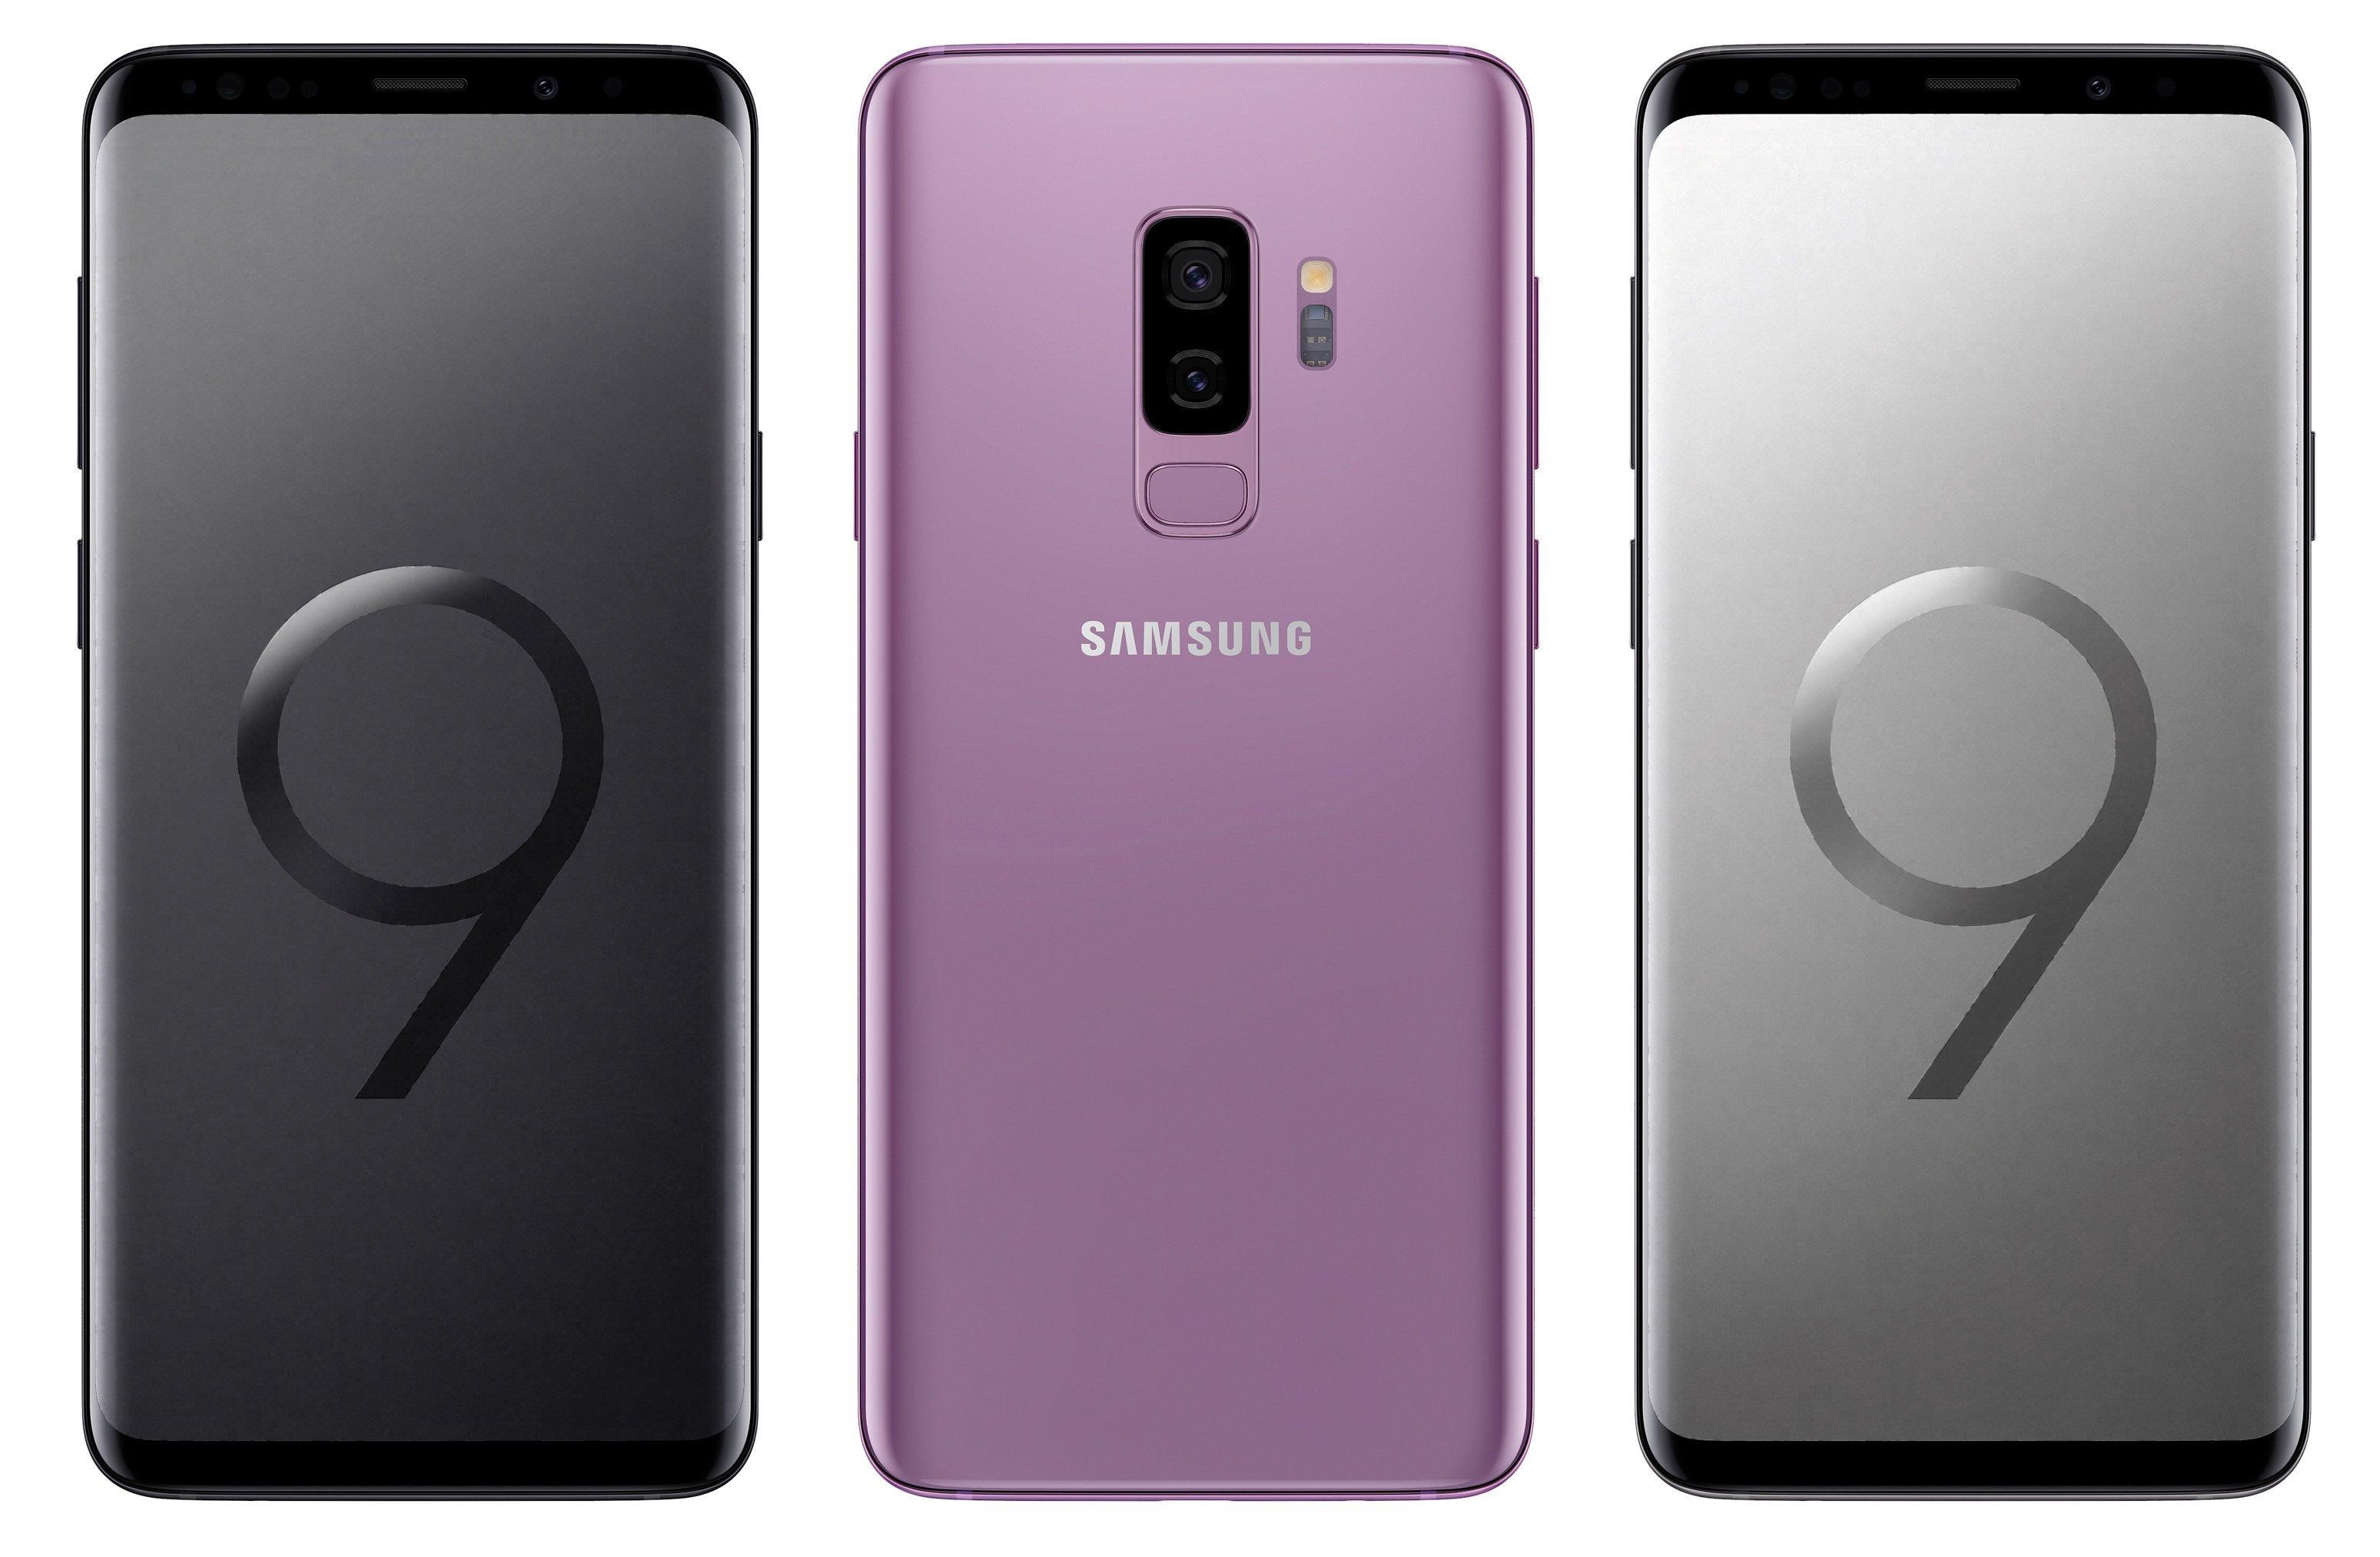 Samsung Galaxy S9 and S9 Plus Price and Specs